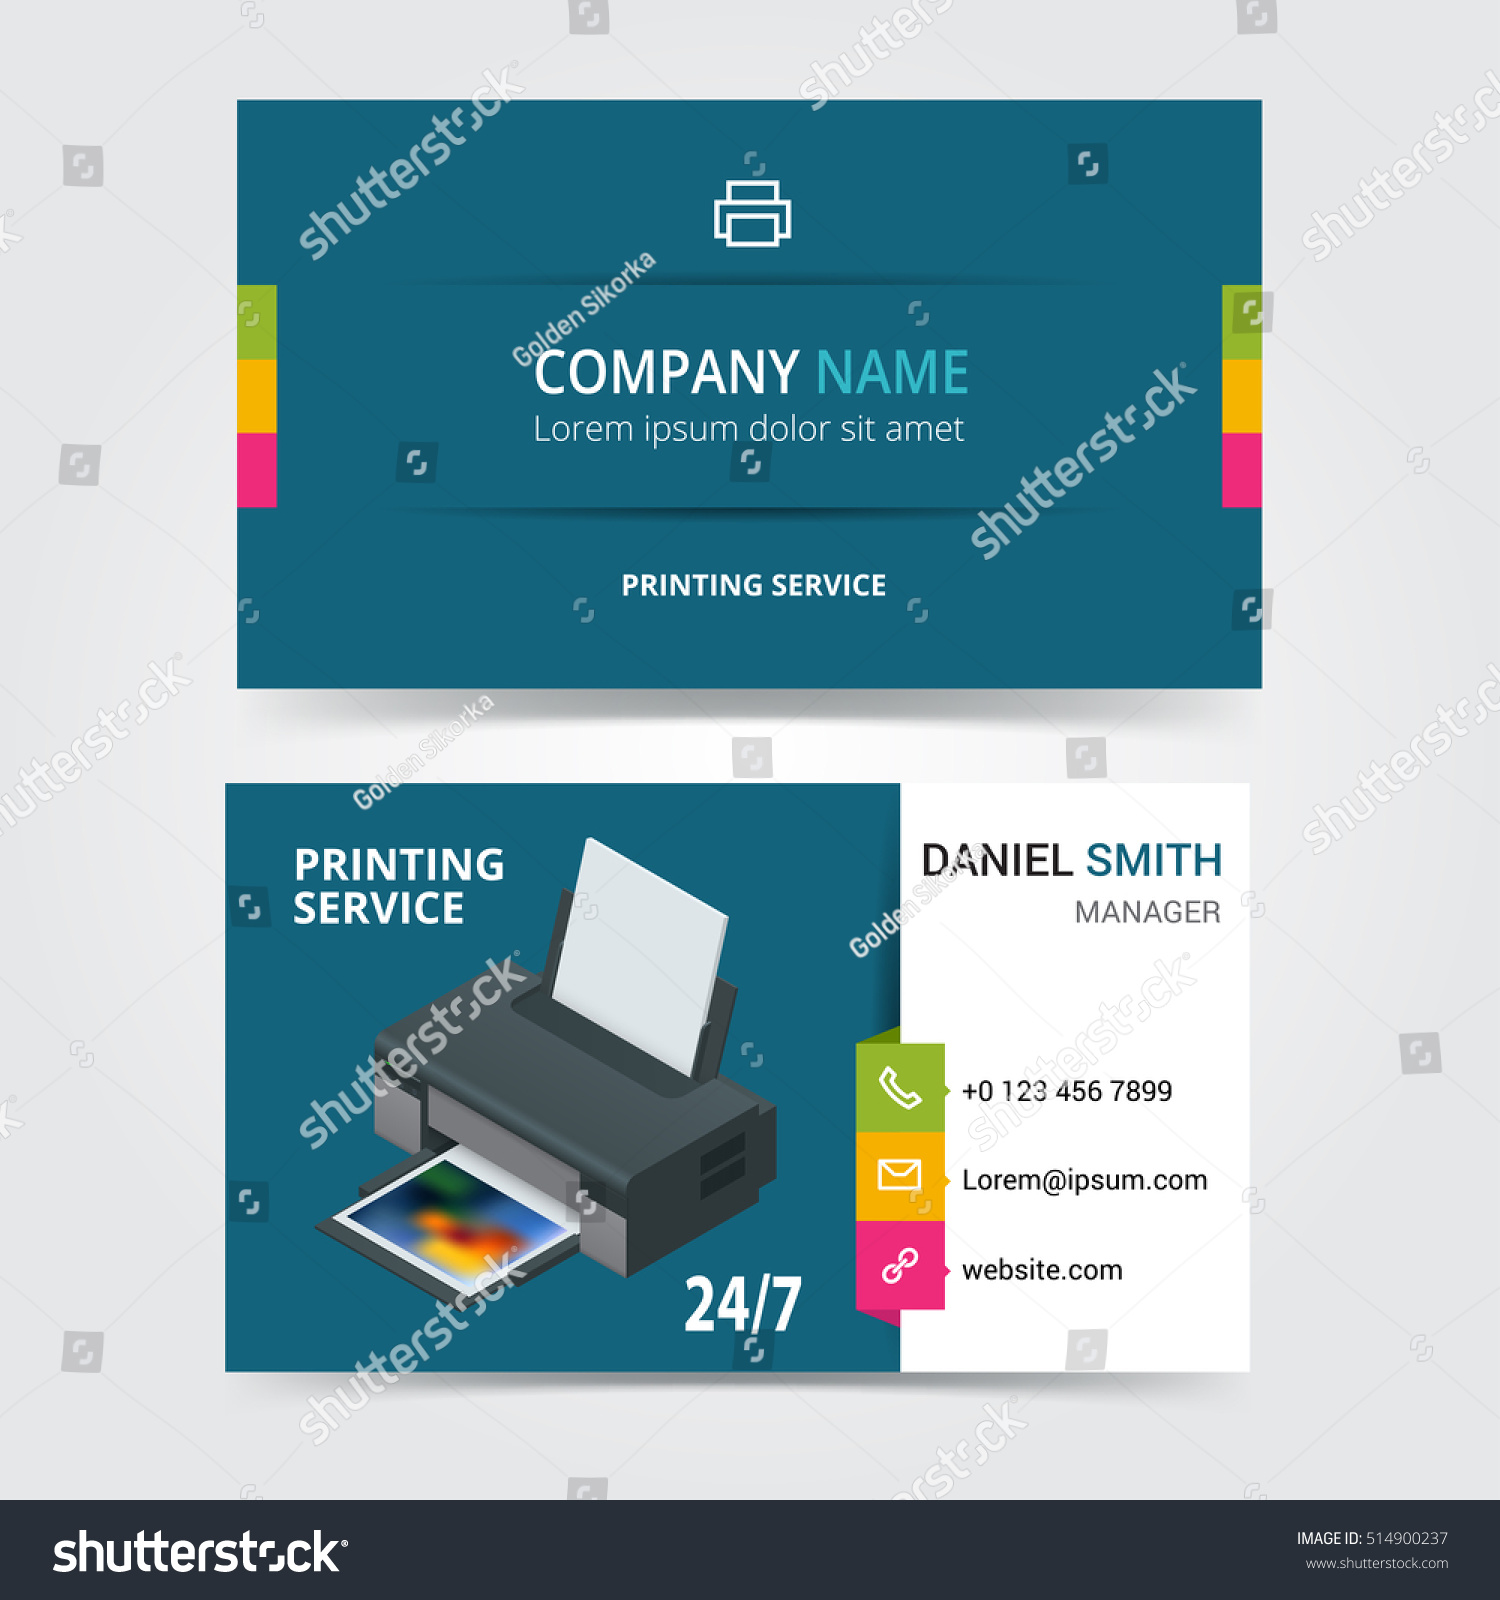 Business Card Printers In Centurion Choice Image - Card Design And ...